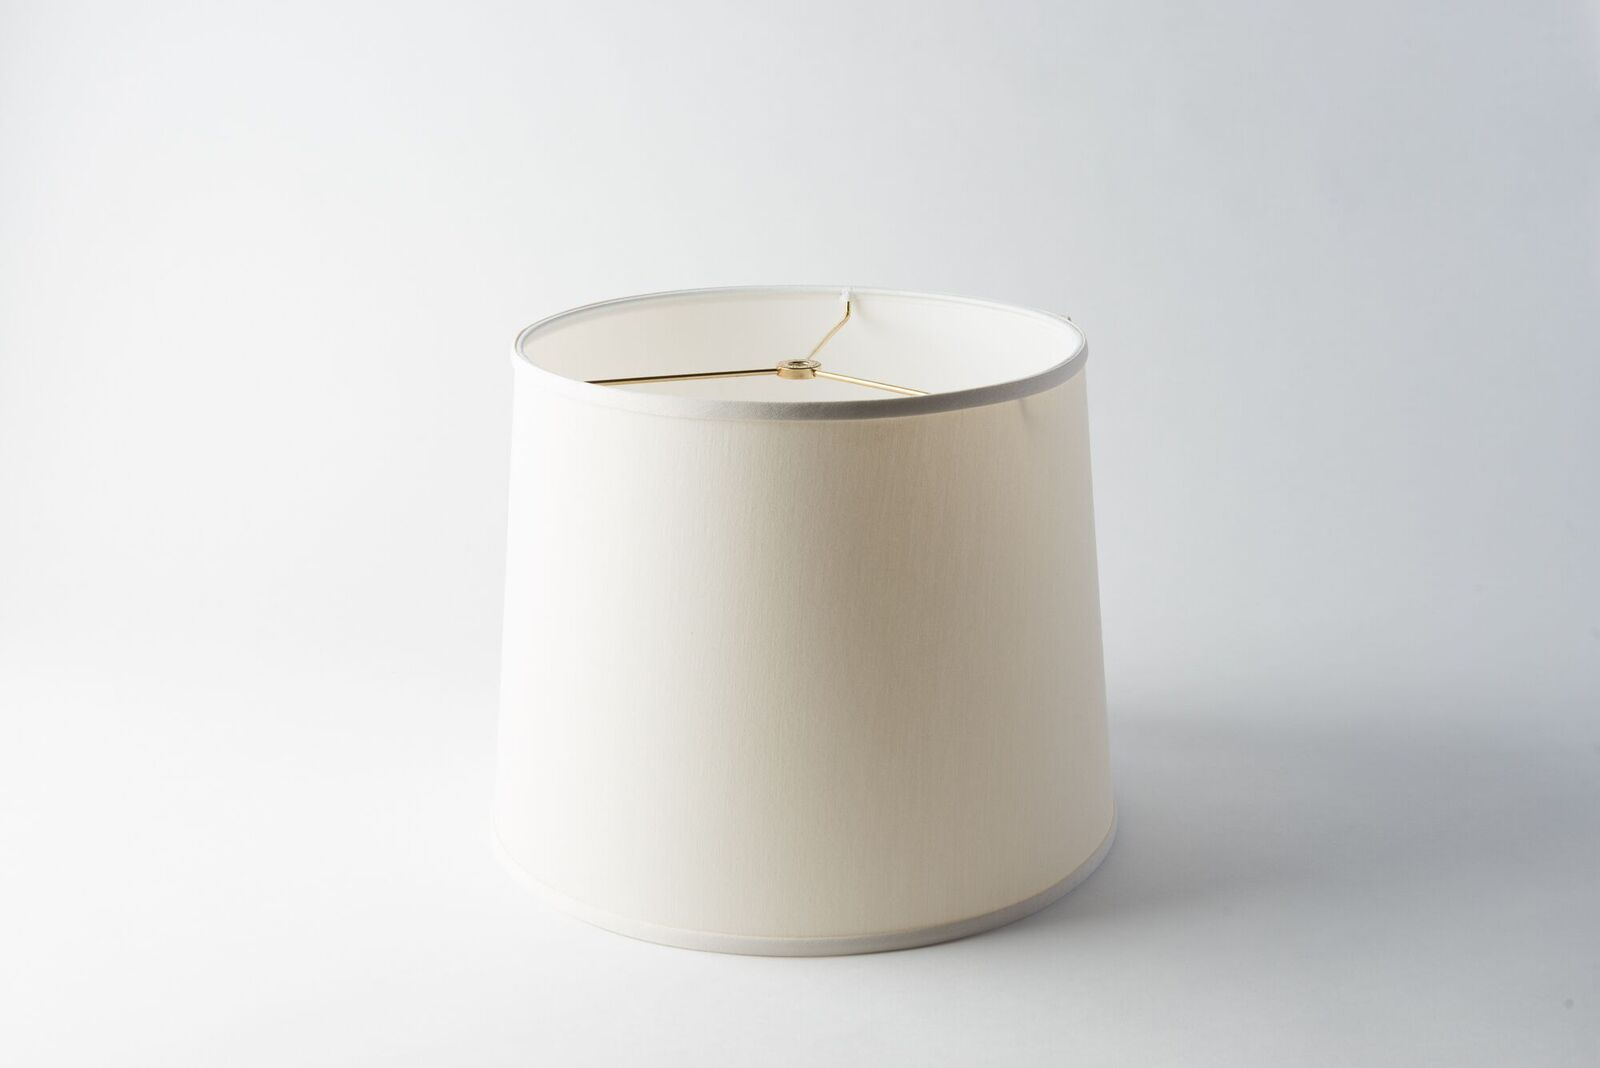 https://www.hotel-lamps.com/resources/assets/images/product_images/retro_drum_ivory_silk.jpeg